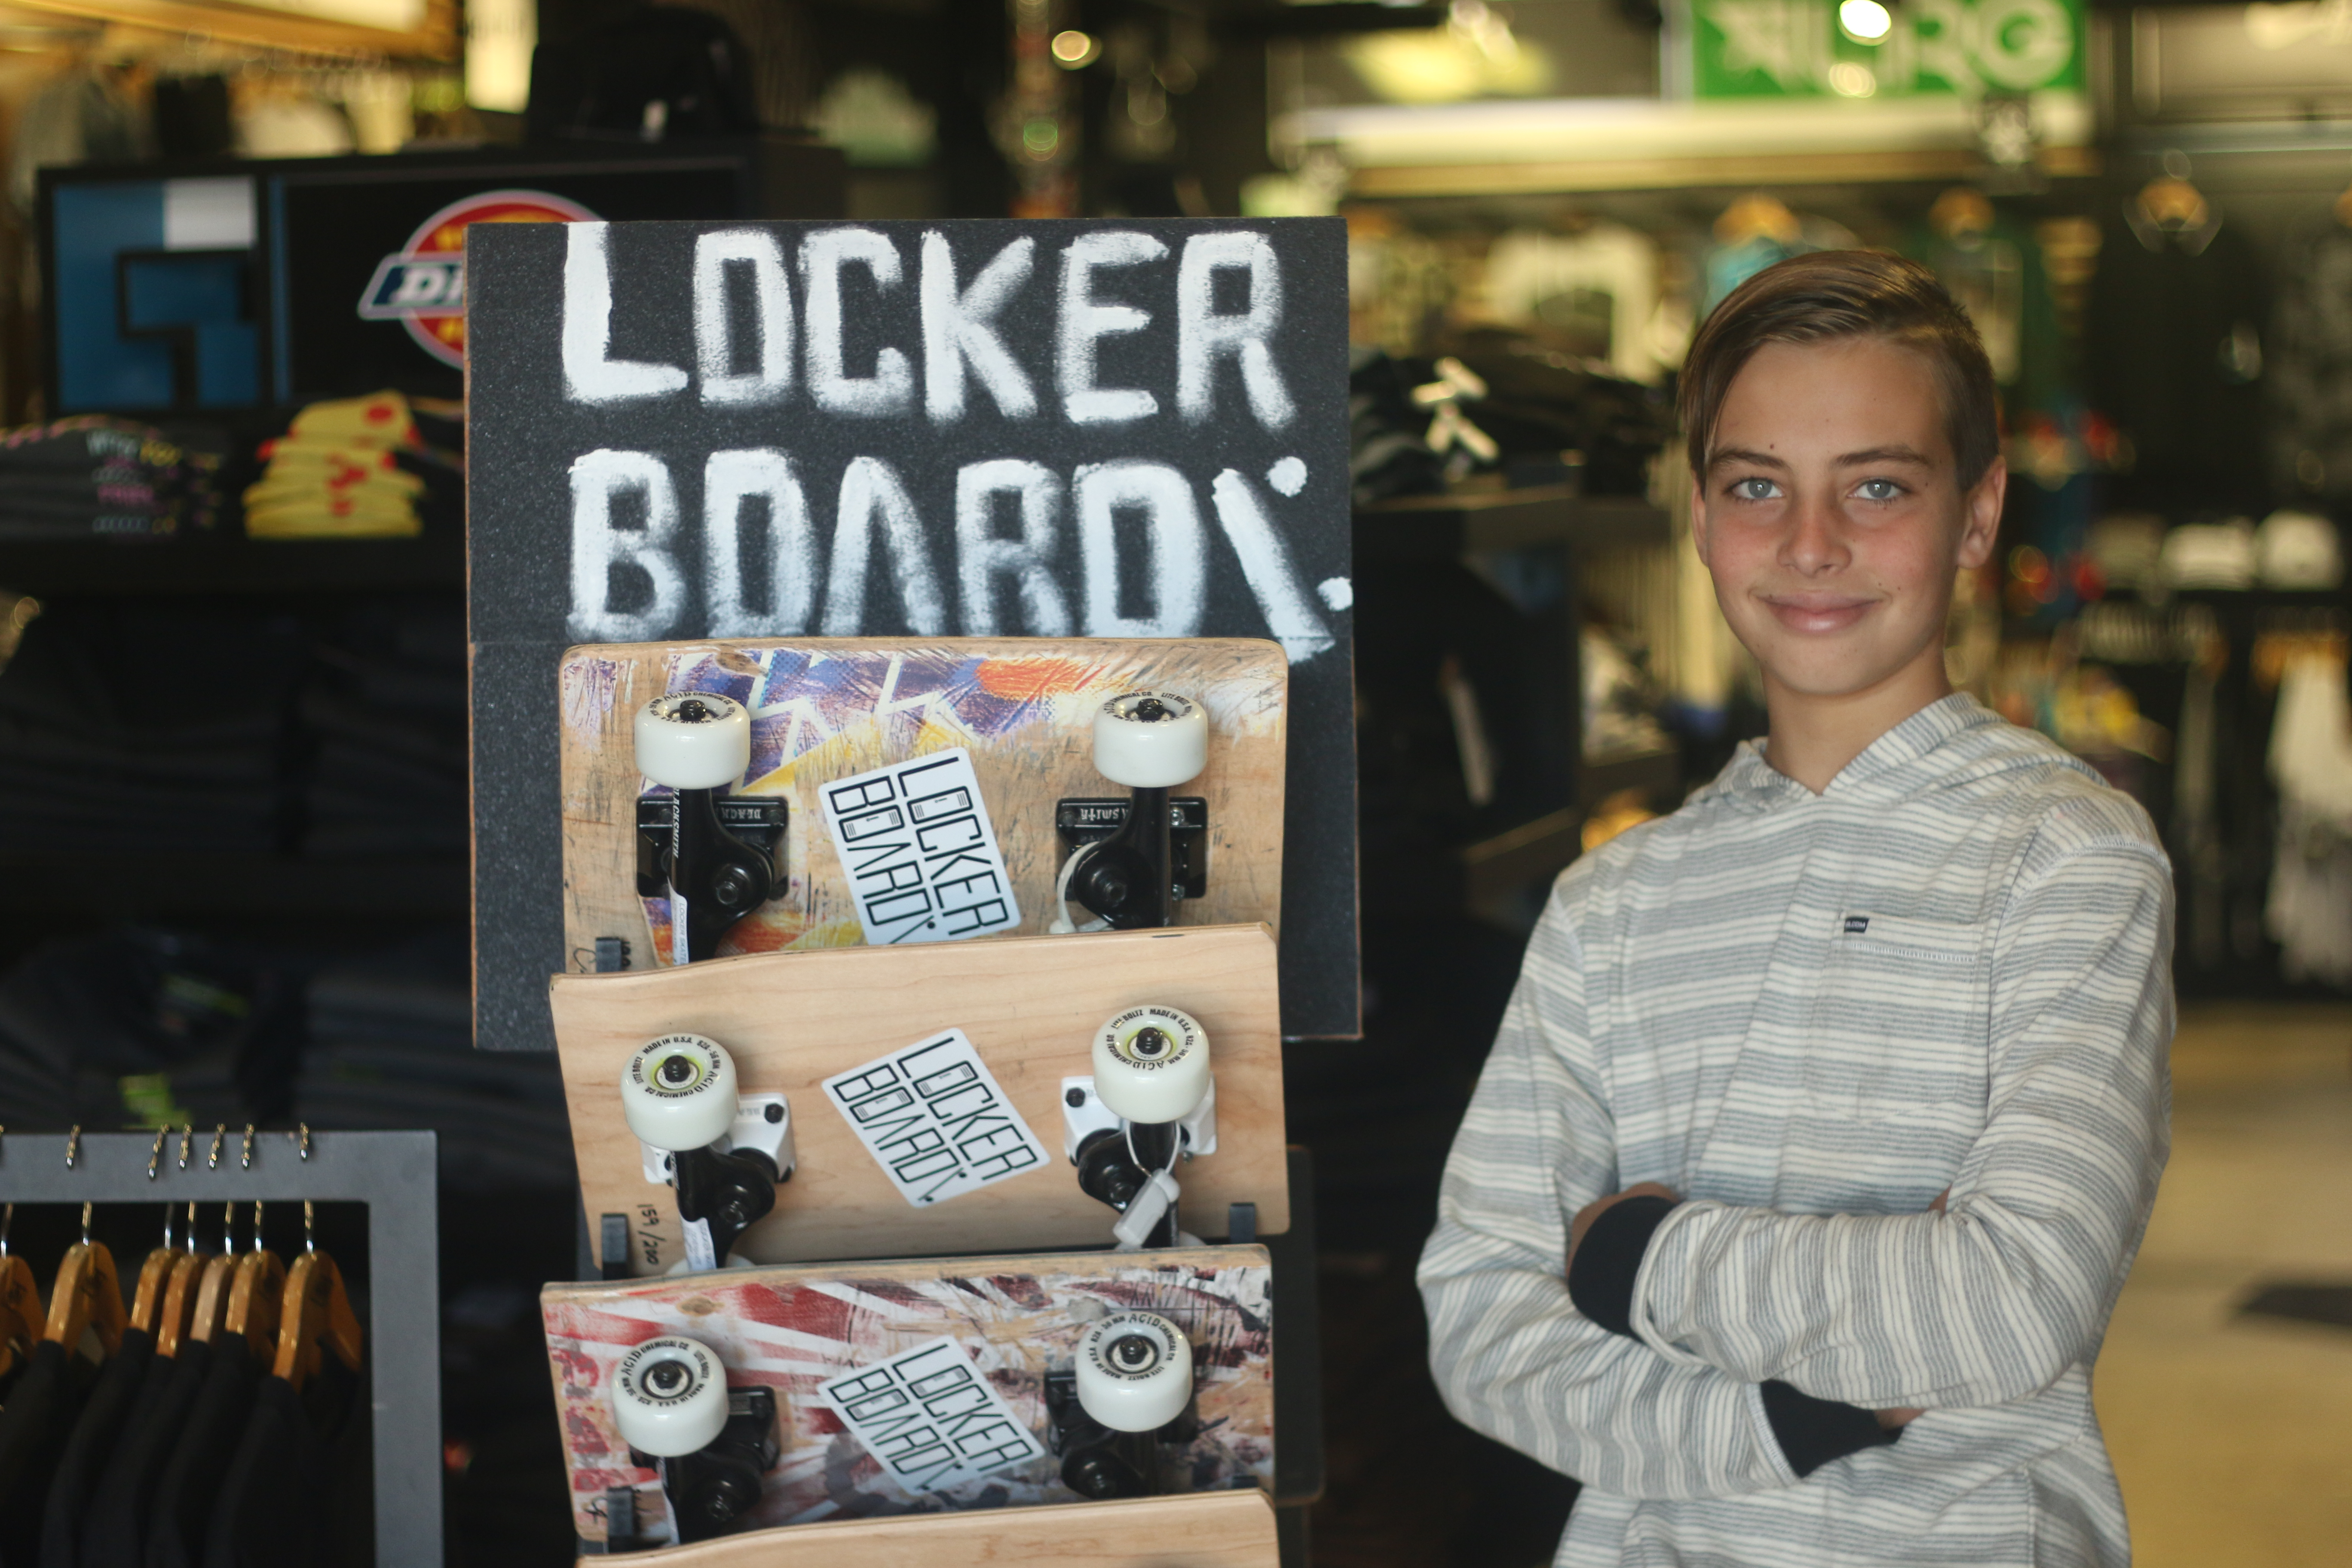 Carson Kropfl's Locker Board company is taking off and has a small space in Jack's Surfboards retail shop in Dana Point. Photo: Eric Heinz